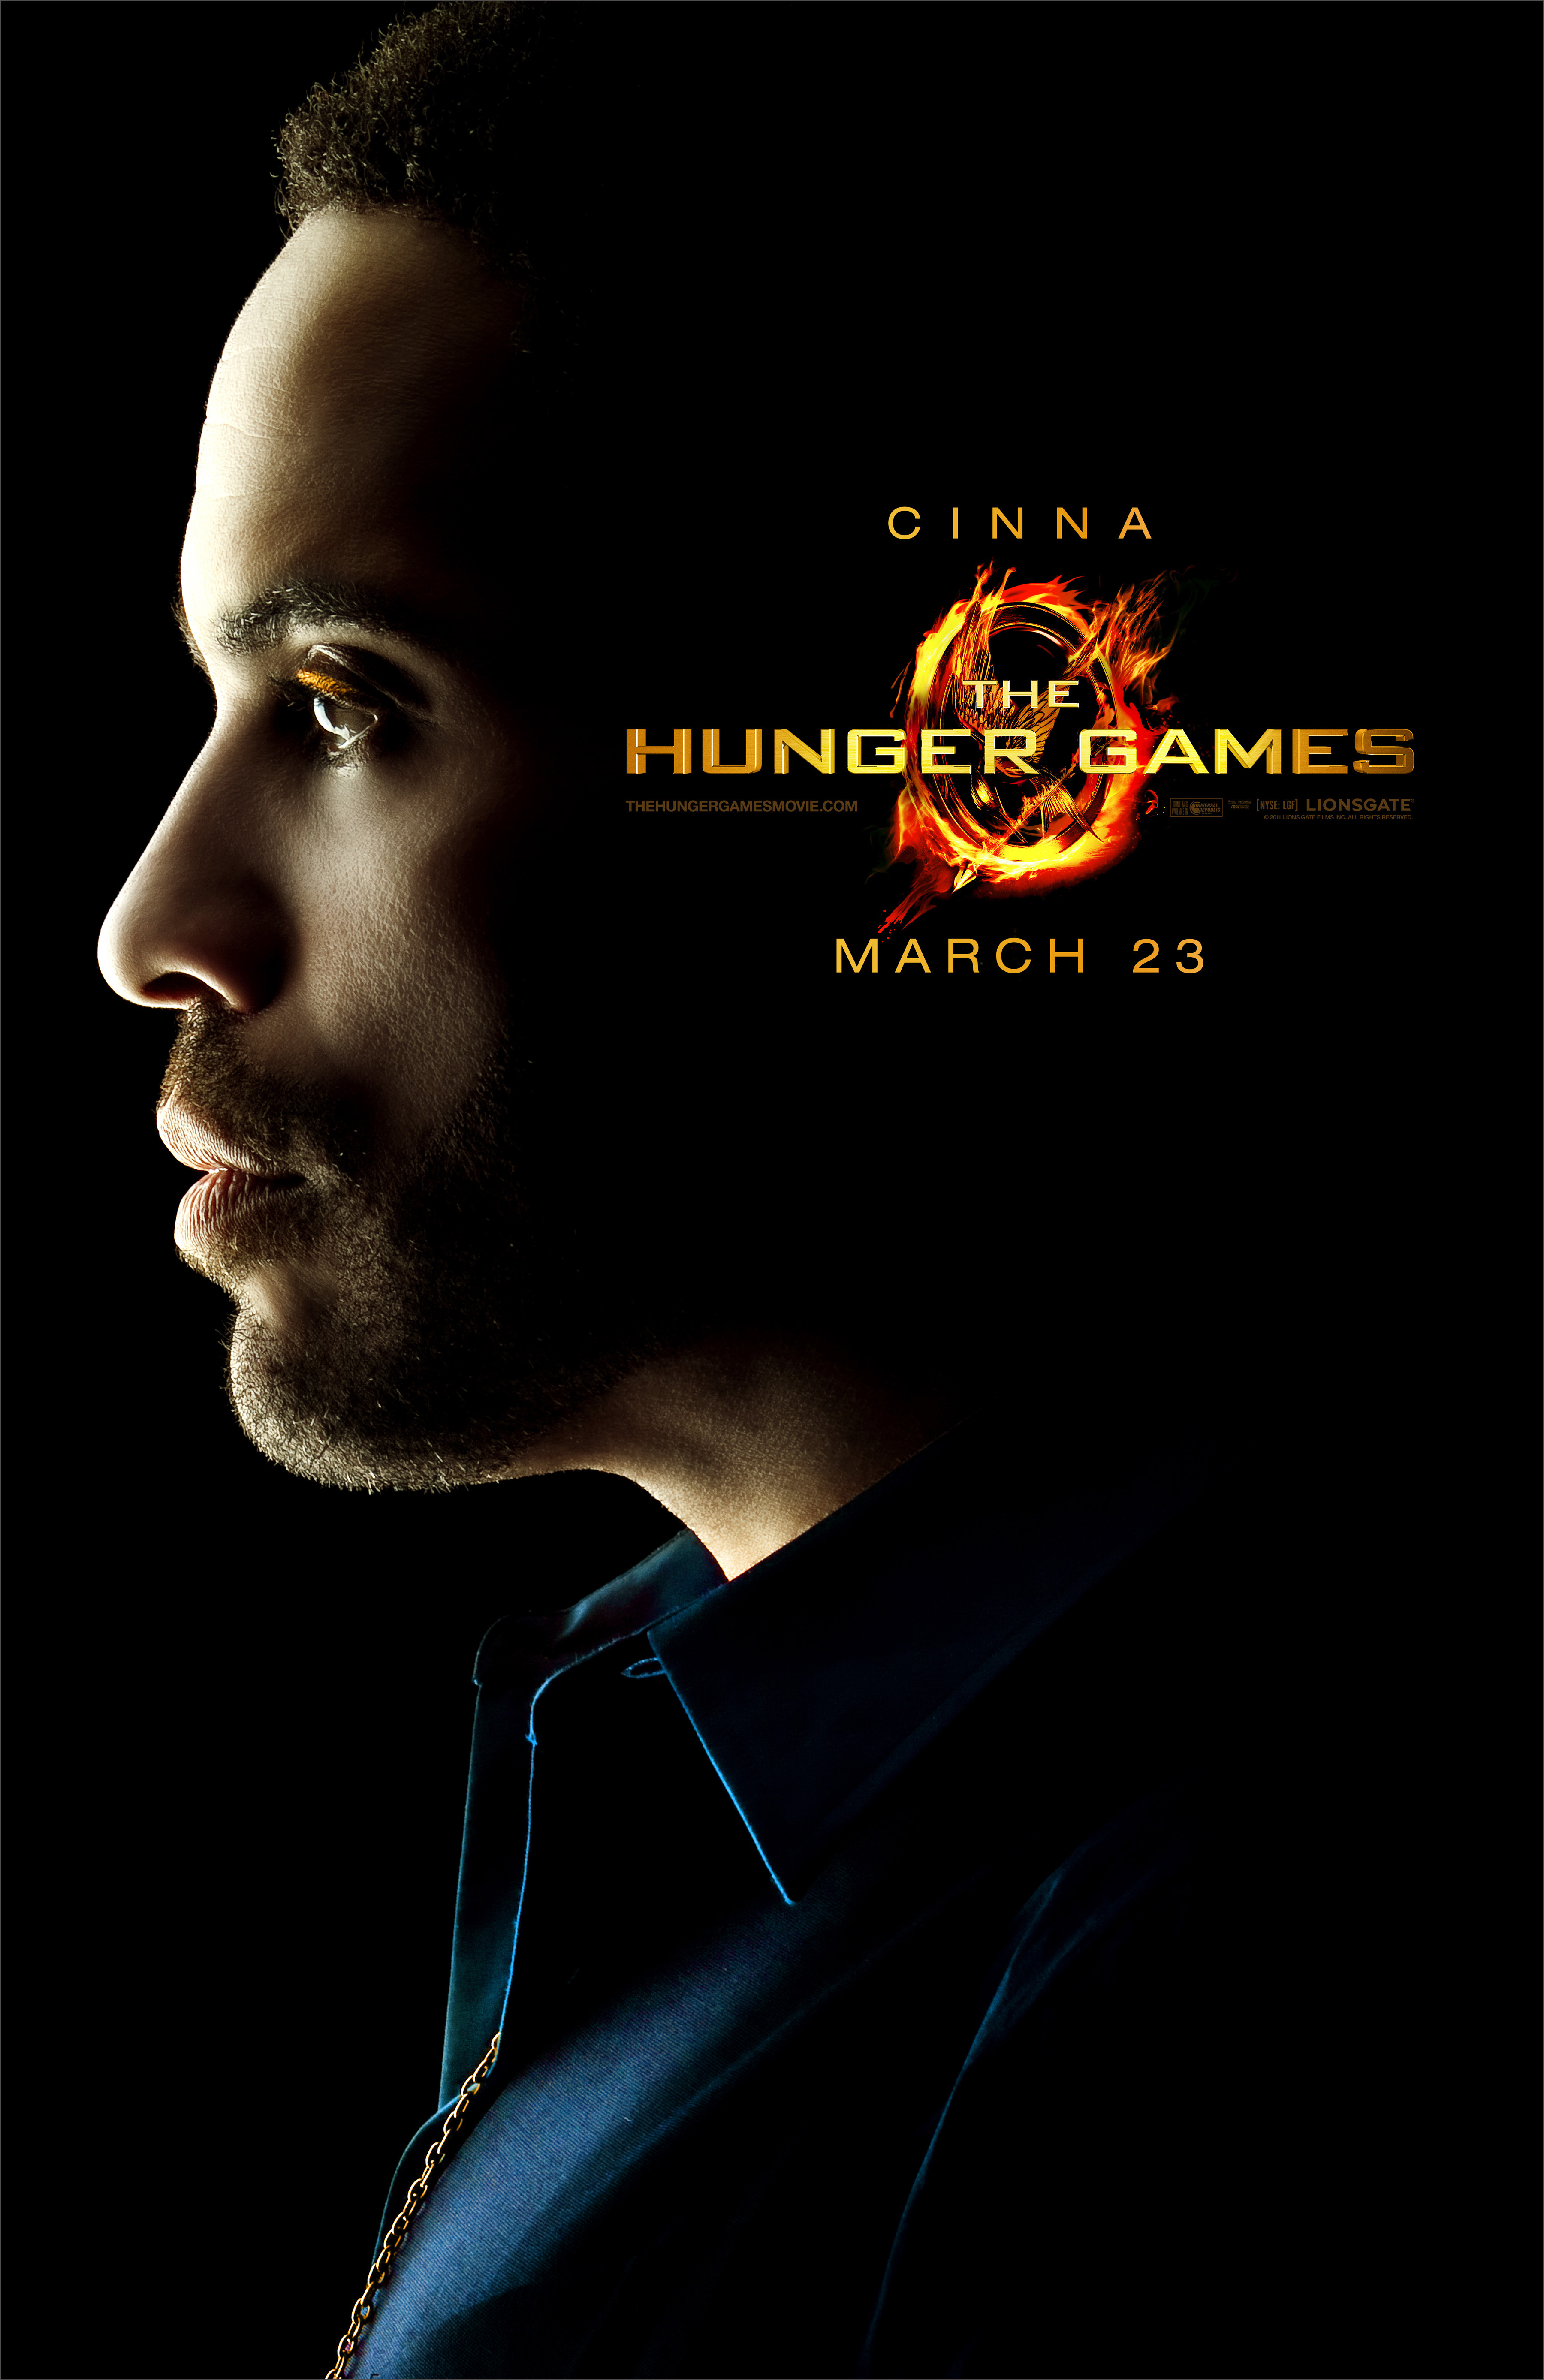 http://collider.com/wp-content/uploads/the-hunger-games-character-poster-cinna1.jpg